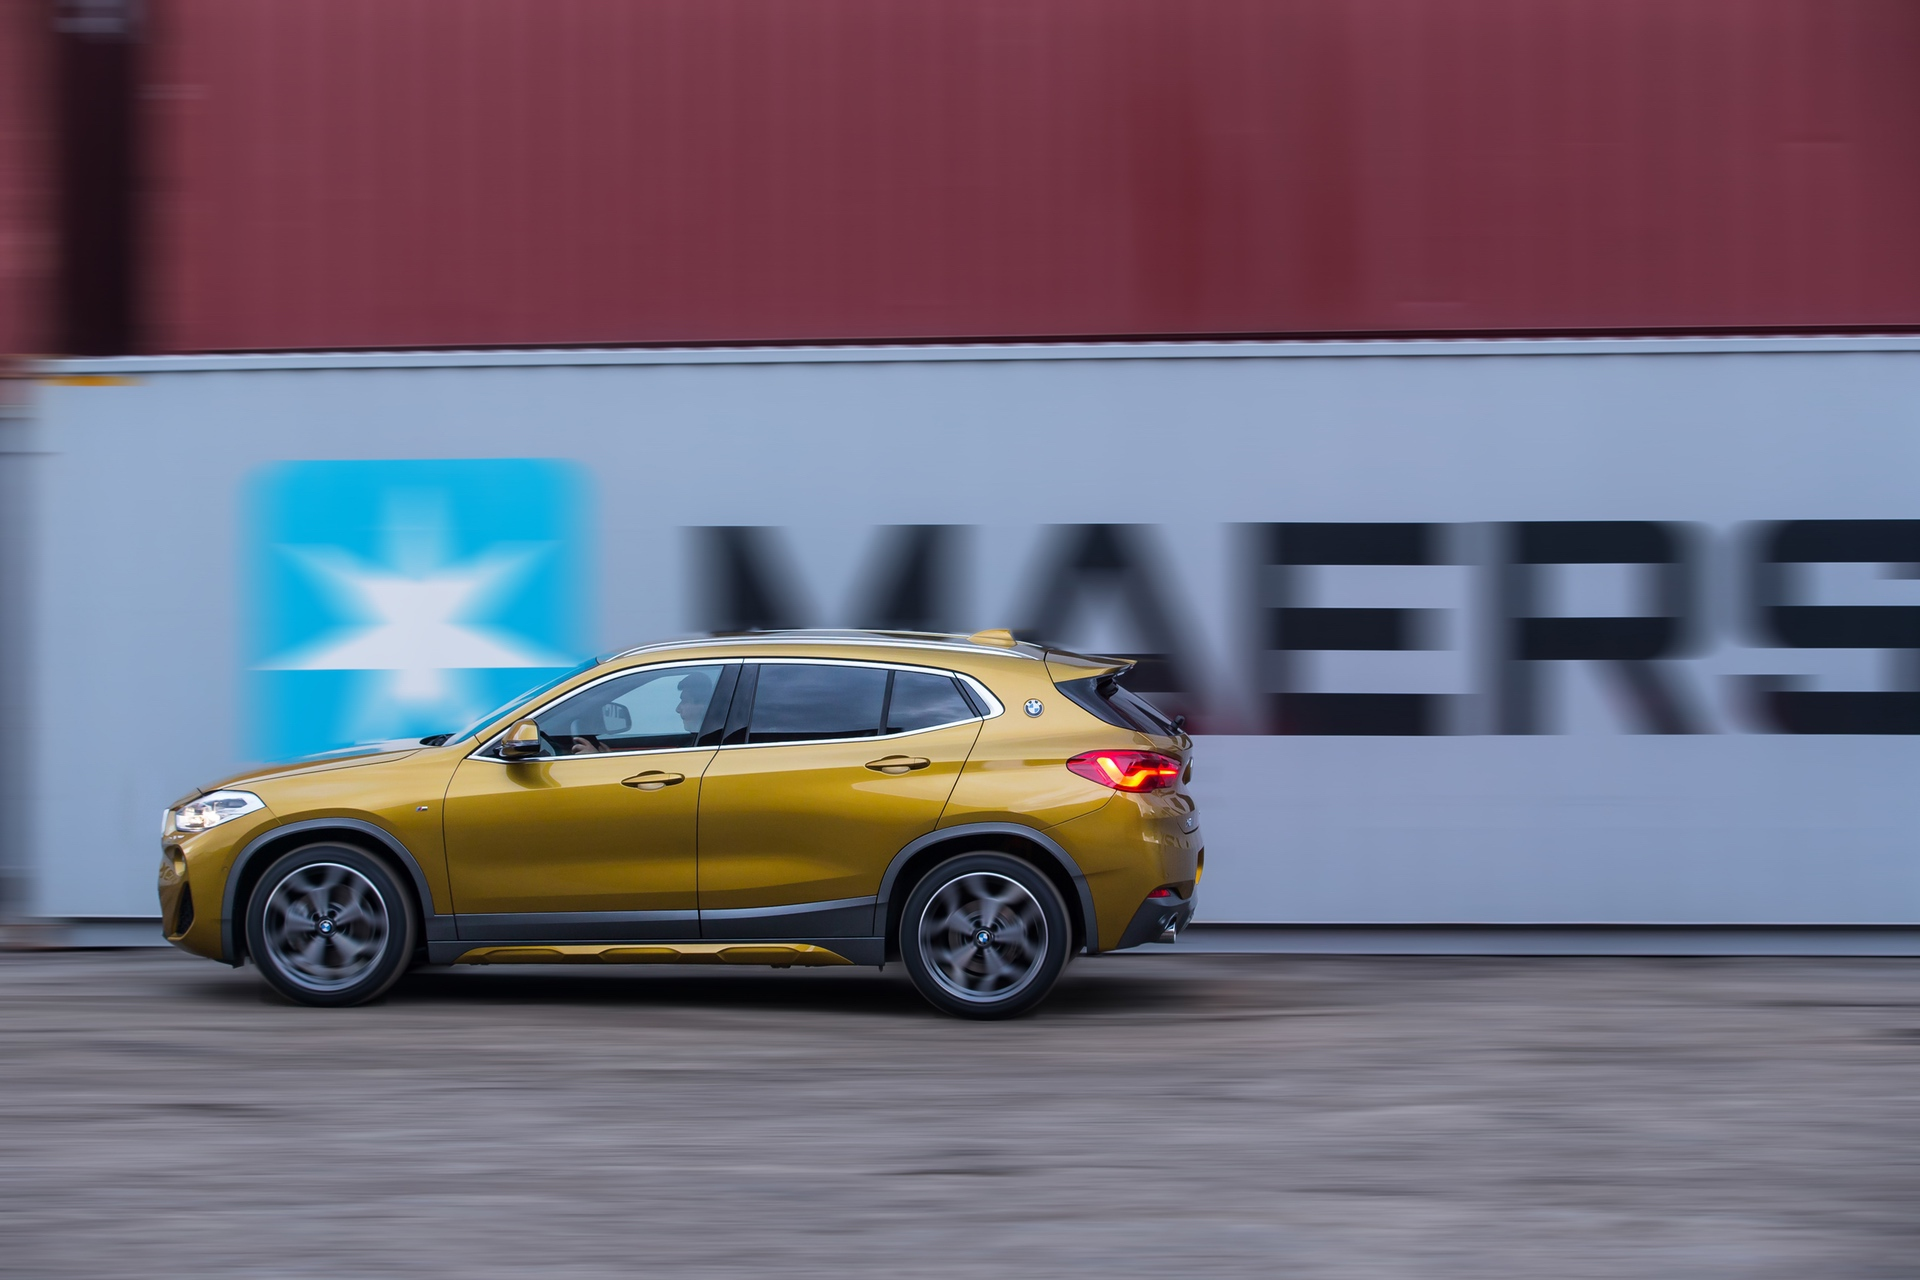 BMW_X2_Greek_presskit_0115